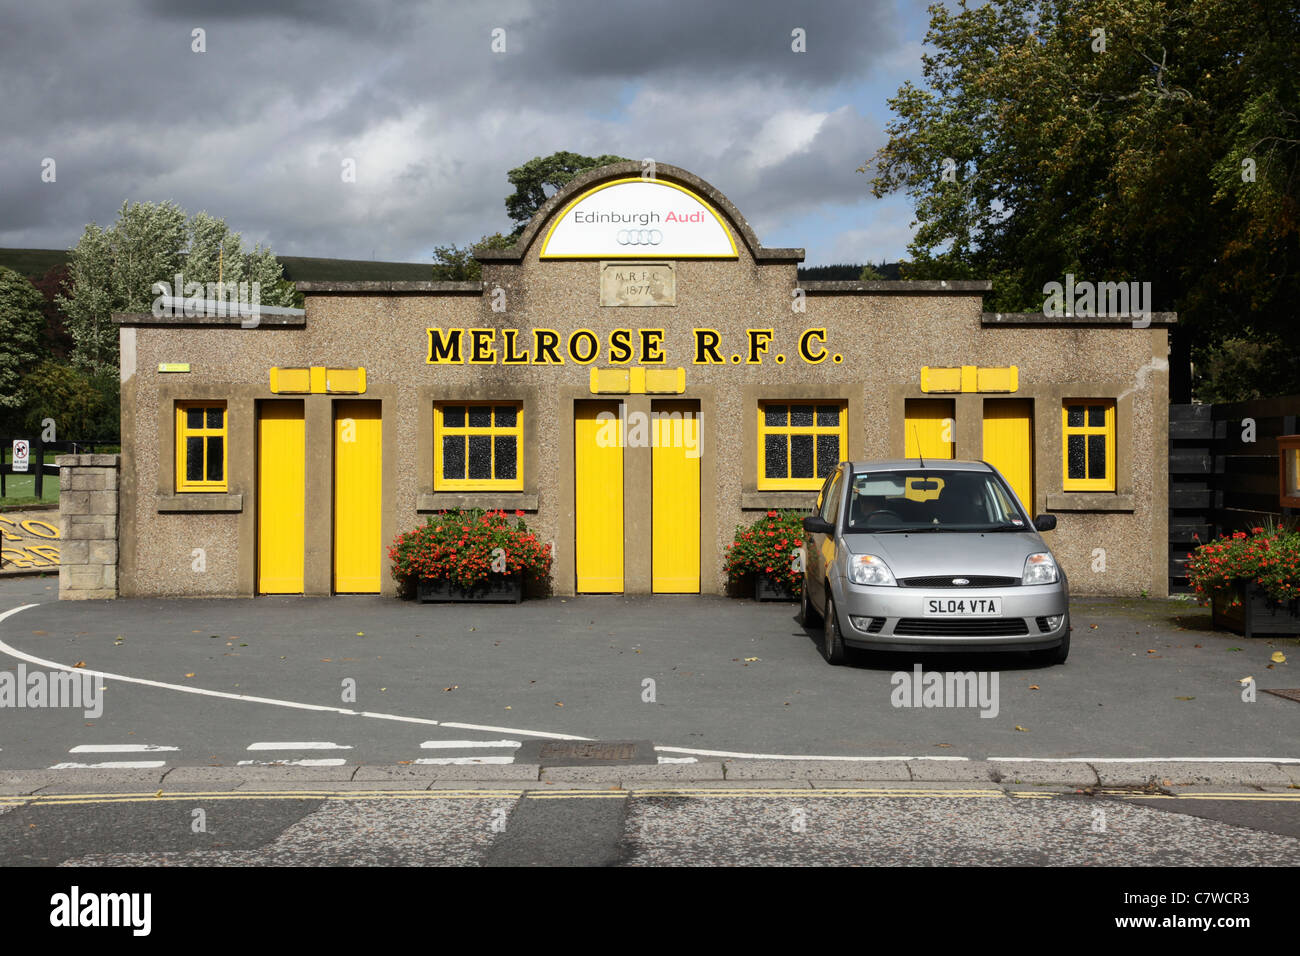 Melrose Rugby Football Club - Stock Image